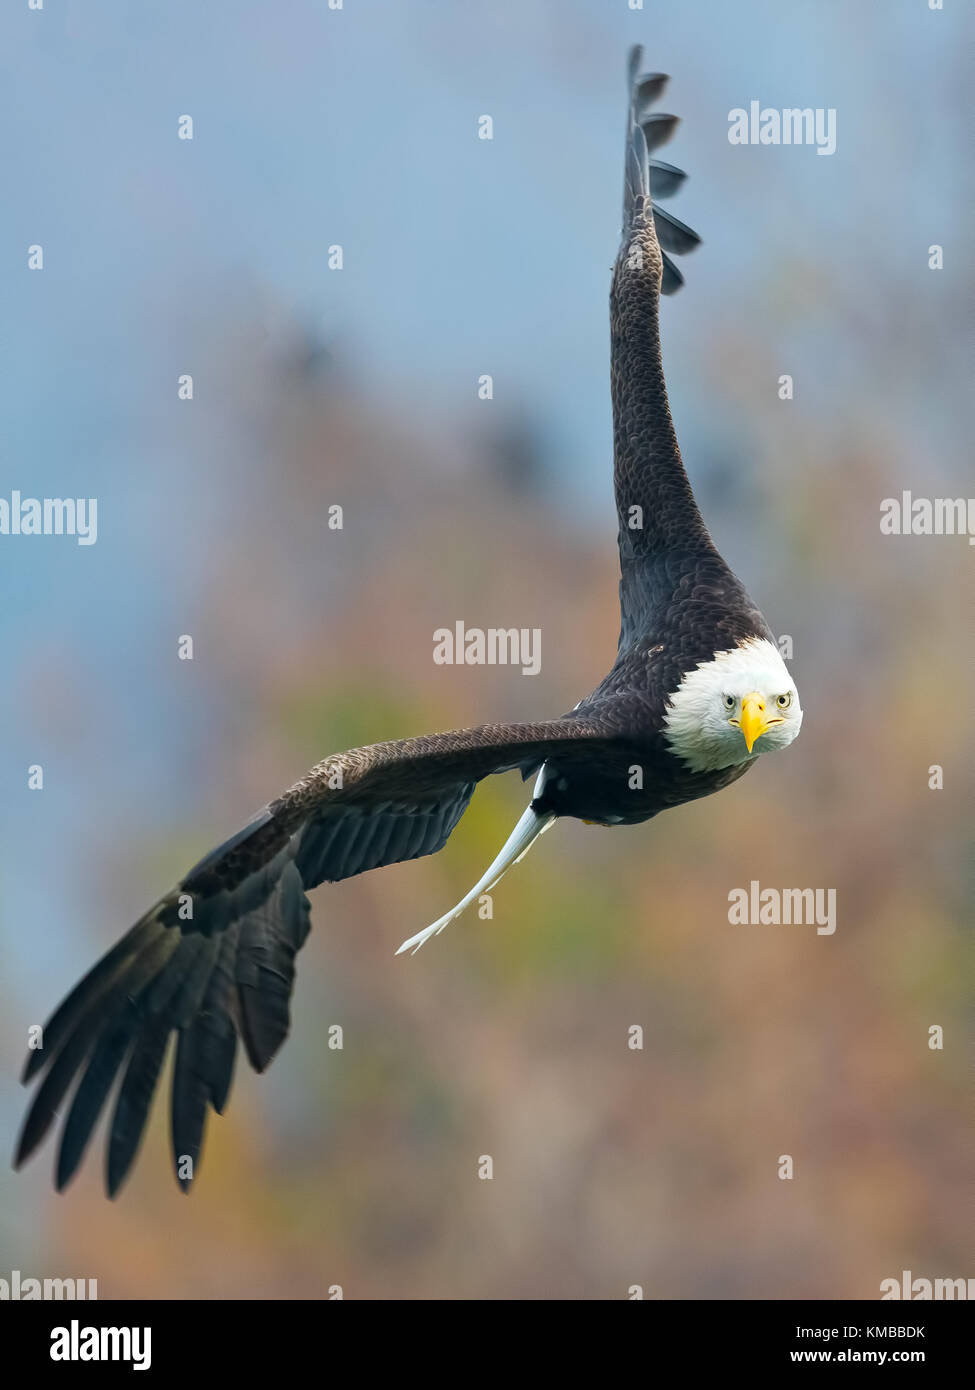 Bald Eagle in Flight - Stock Image